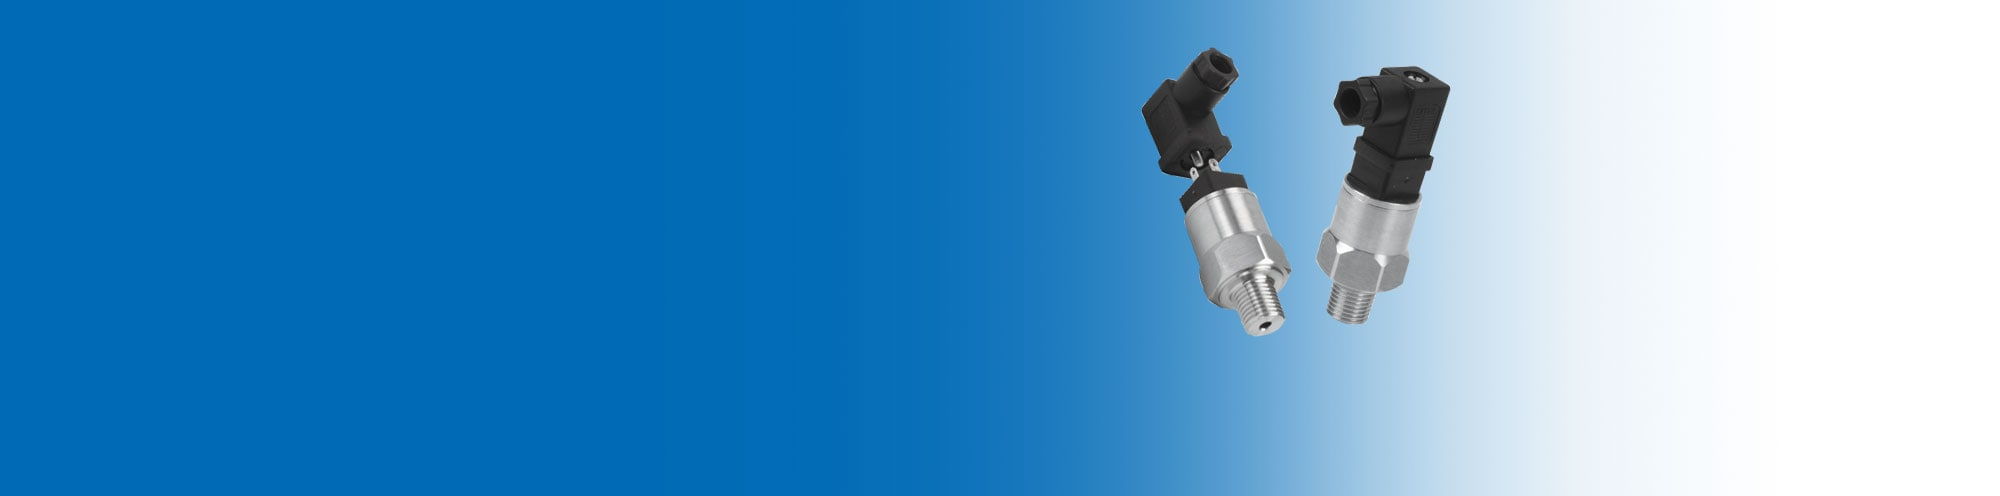 Best-selling pressure transducers Hero Background